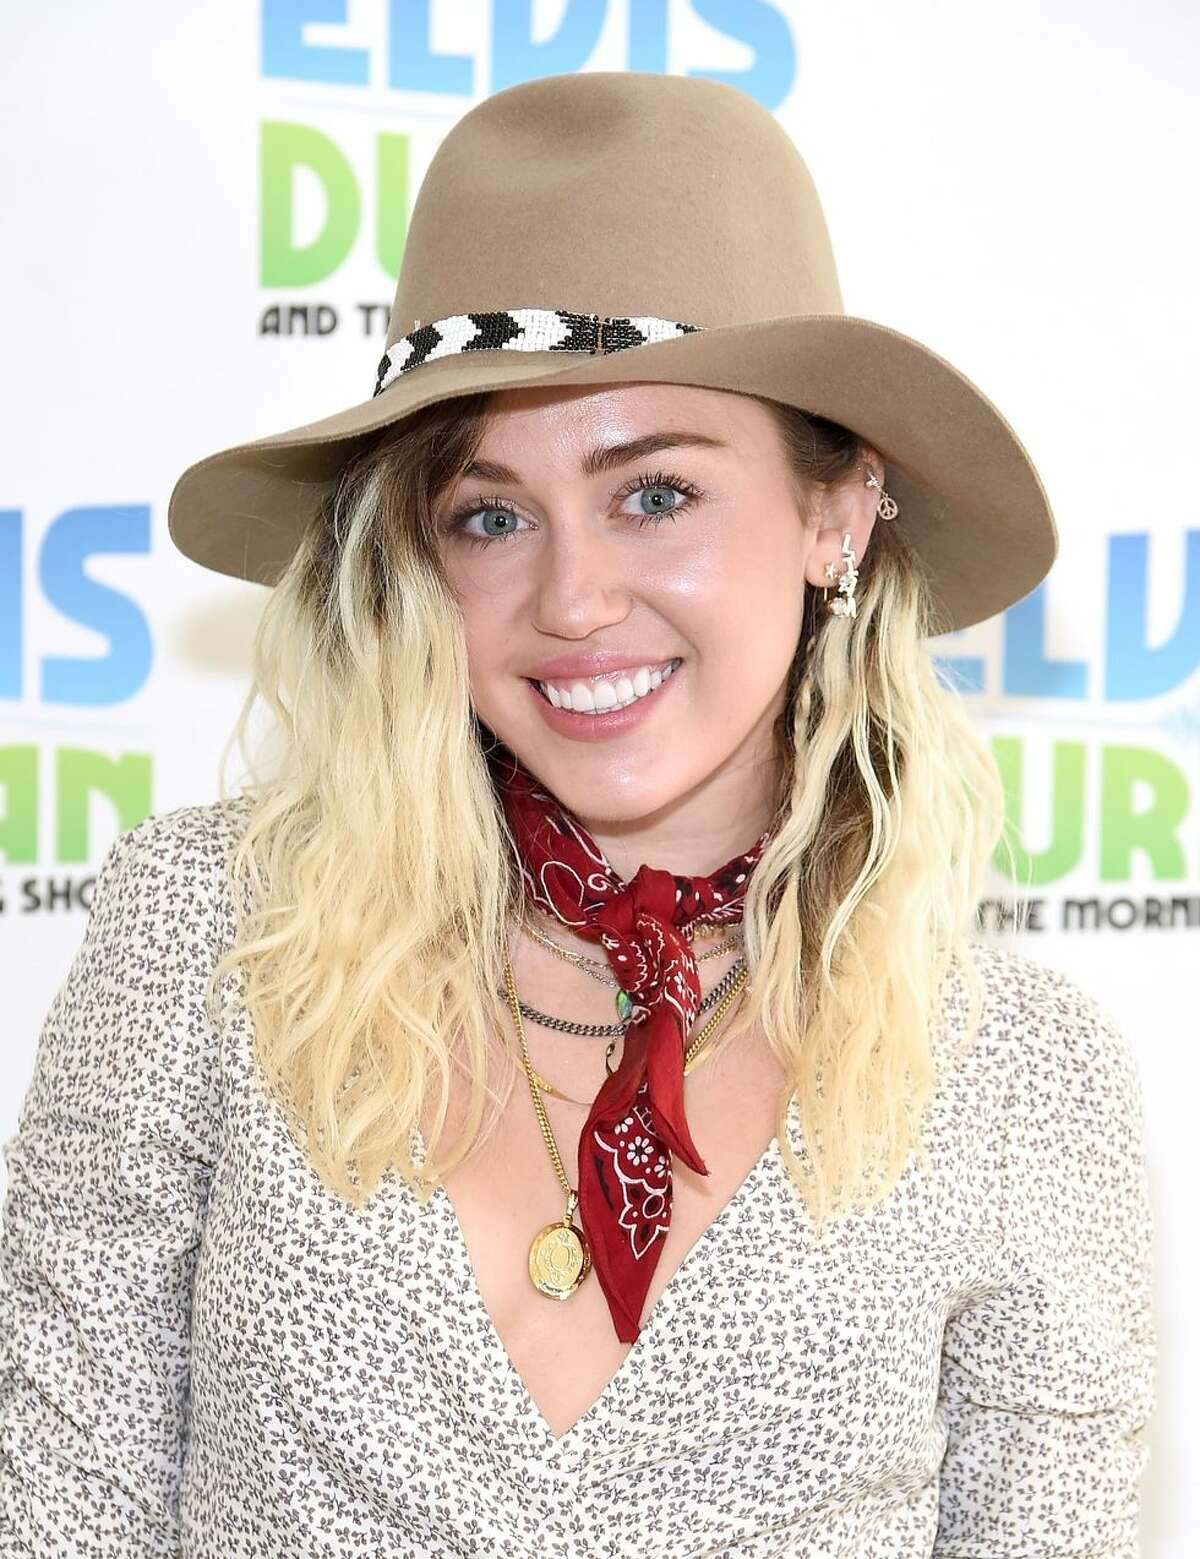 Miley Cyrus: The singer revamped her image and sound with her